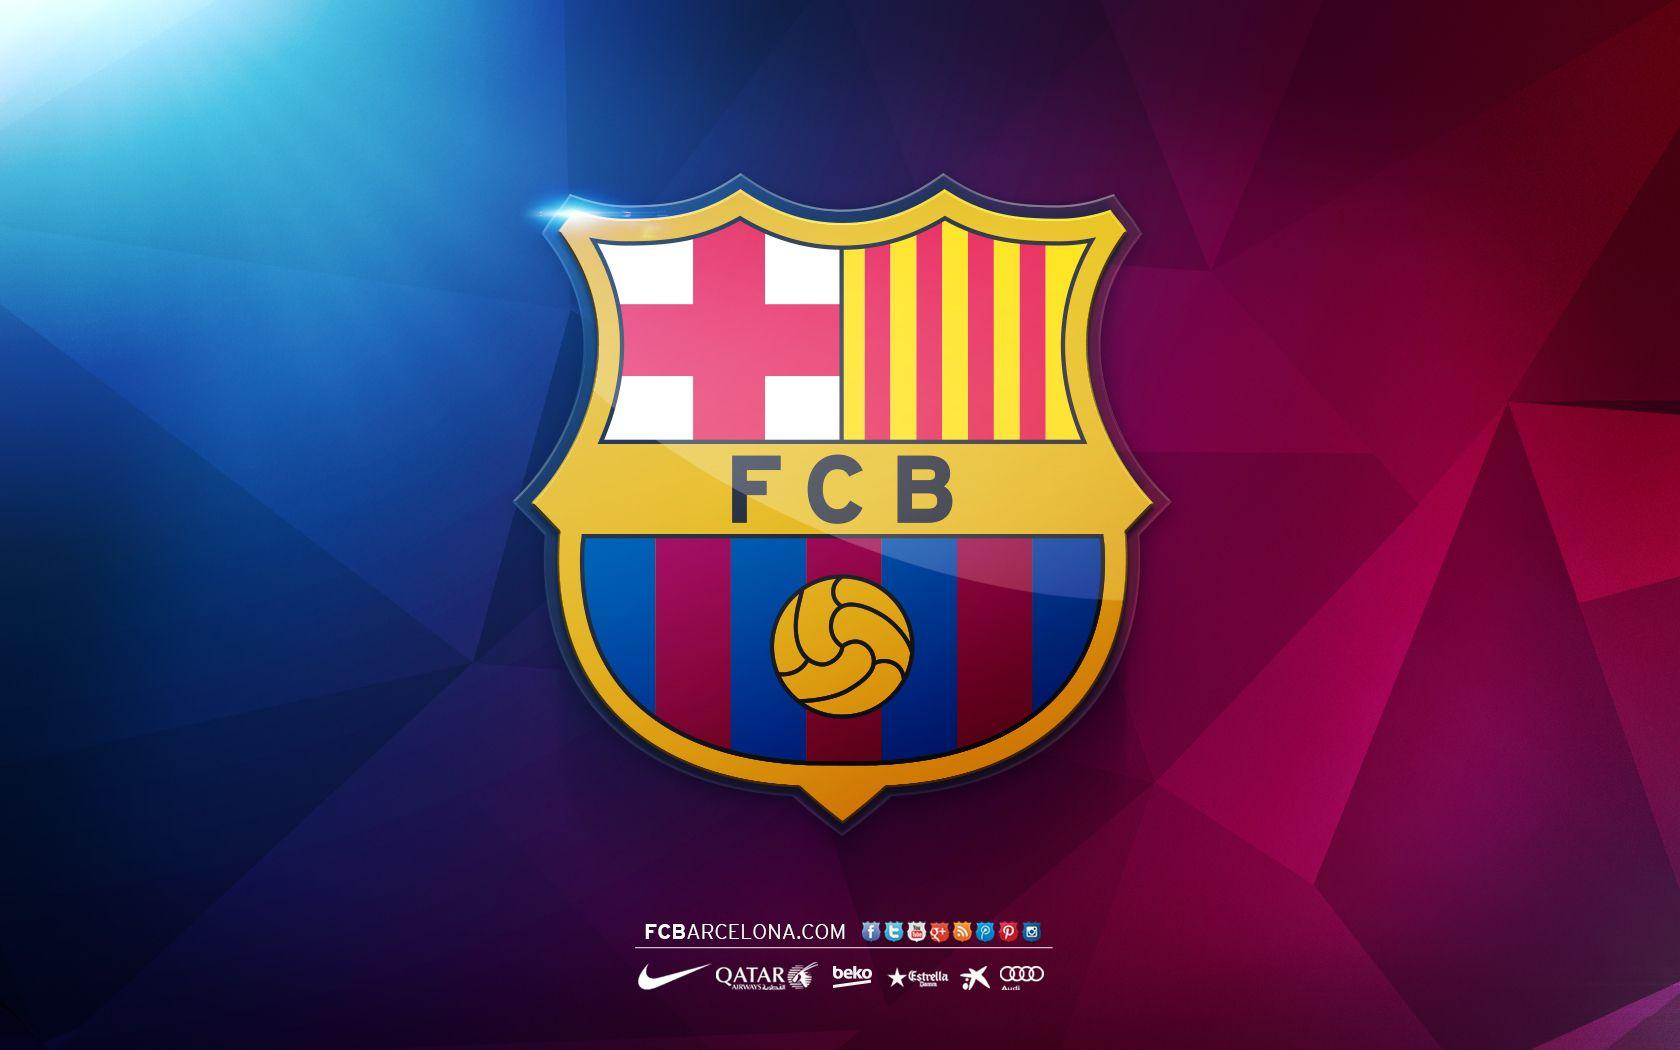 Sport Wallpaper Fc Barcelona: FC Barcelona 2017 Wallpapers